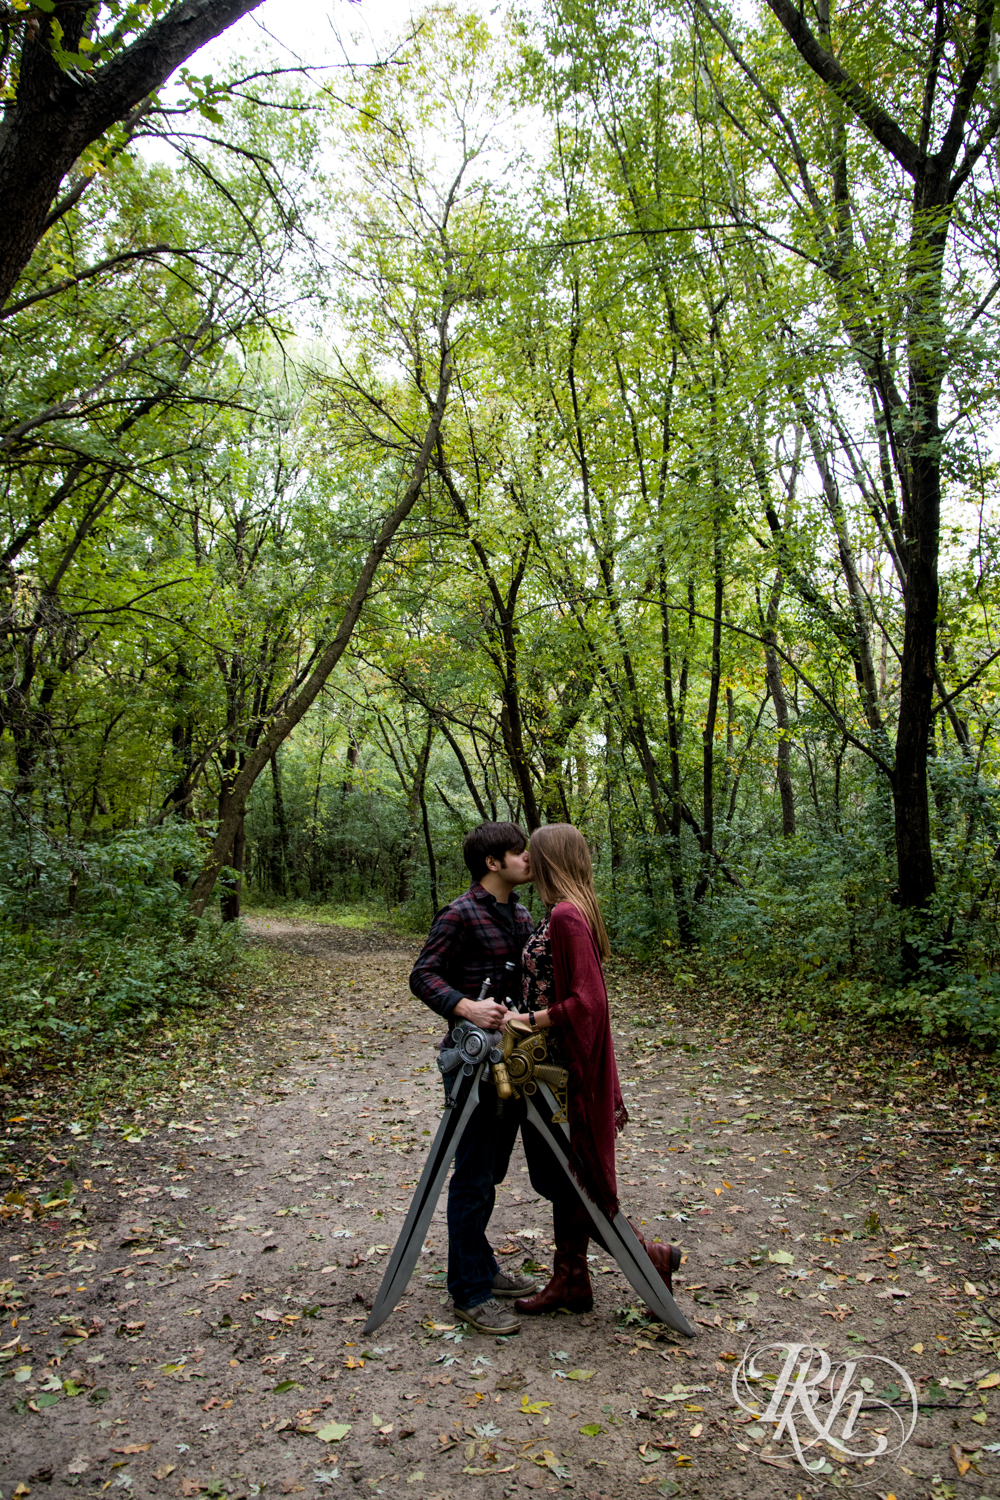 Katie & Brian - Minnesota Engagement Photography - Cosplay - RKH Images - Blog  (17 of 20).jpg